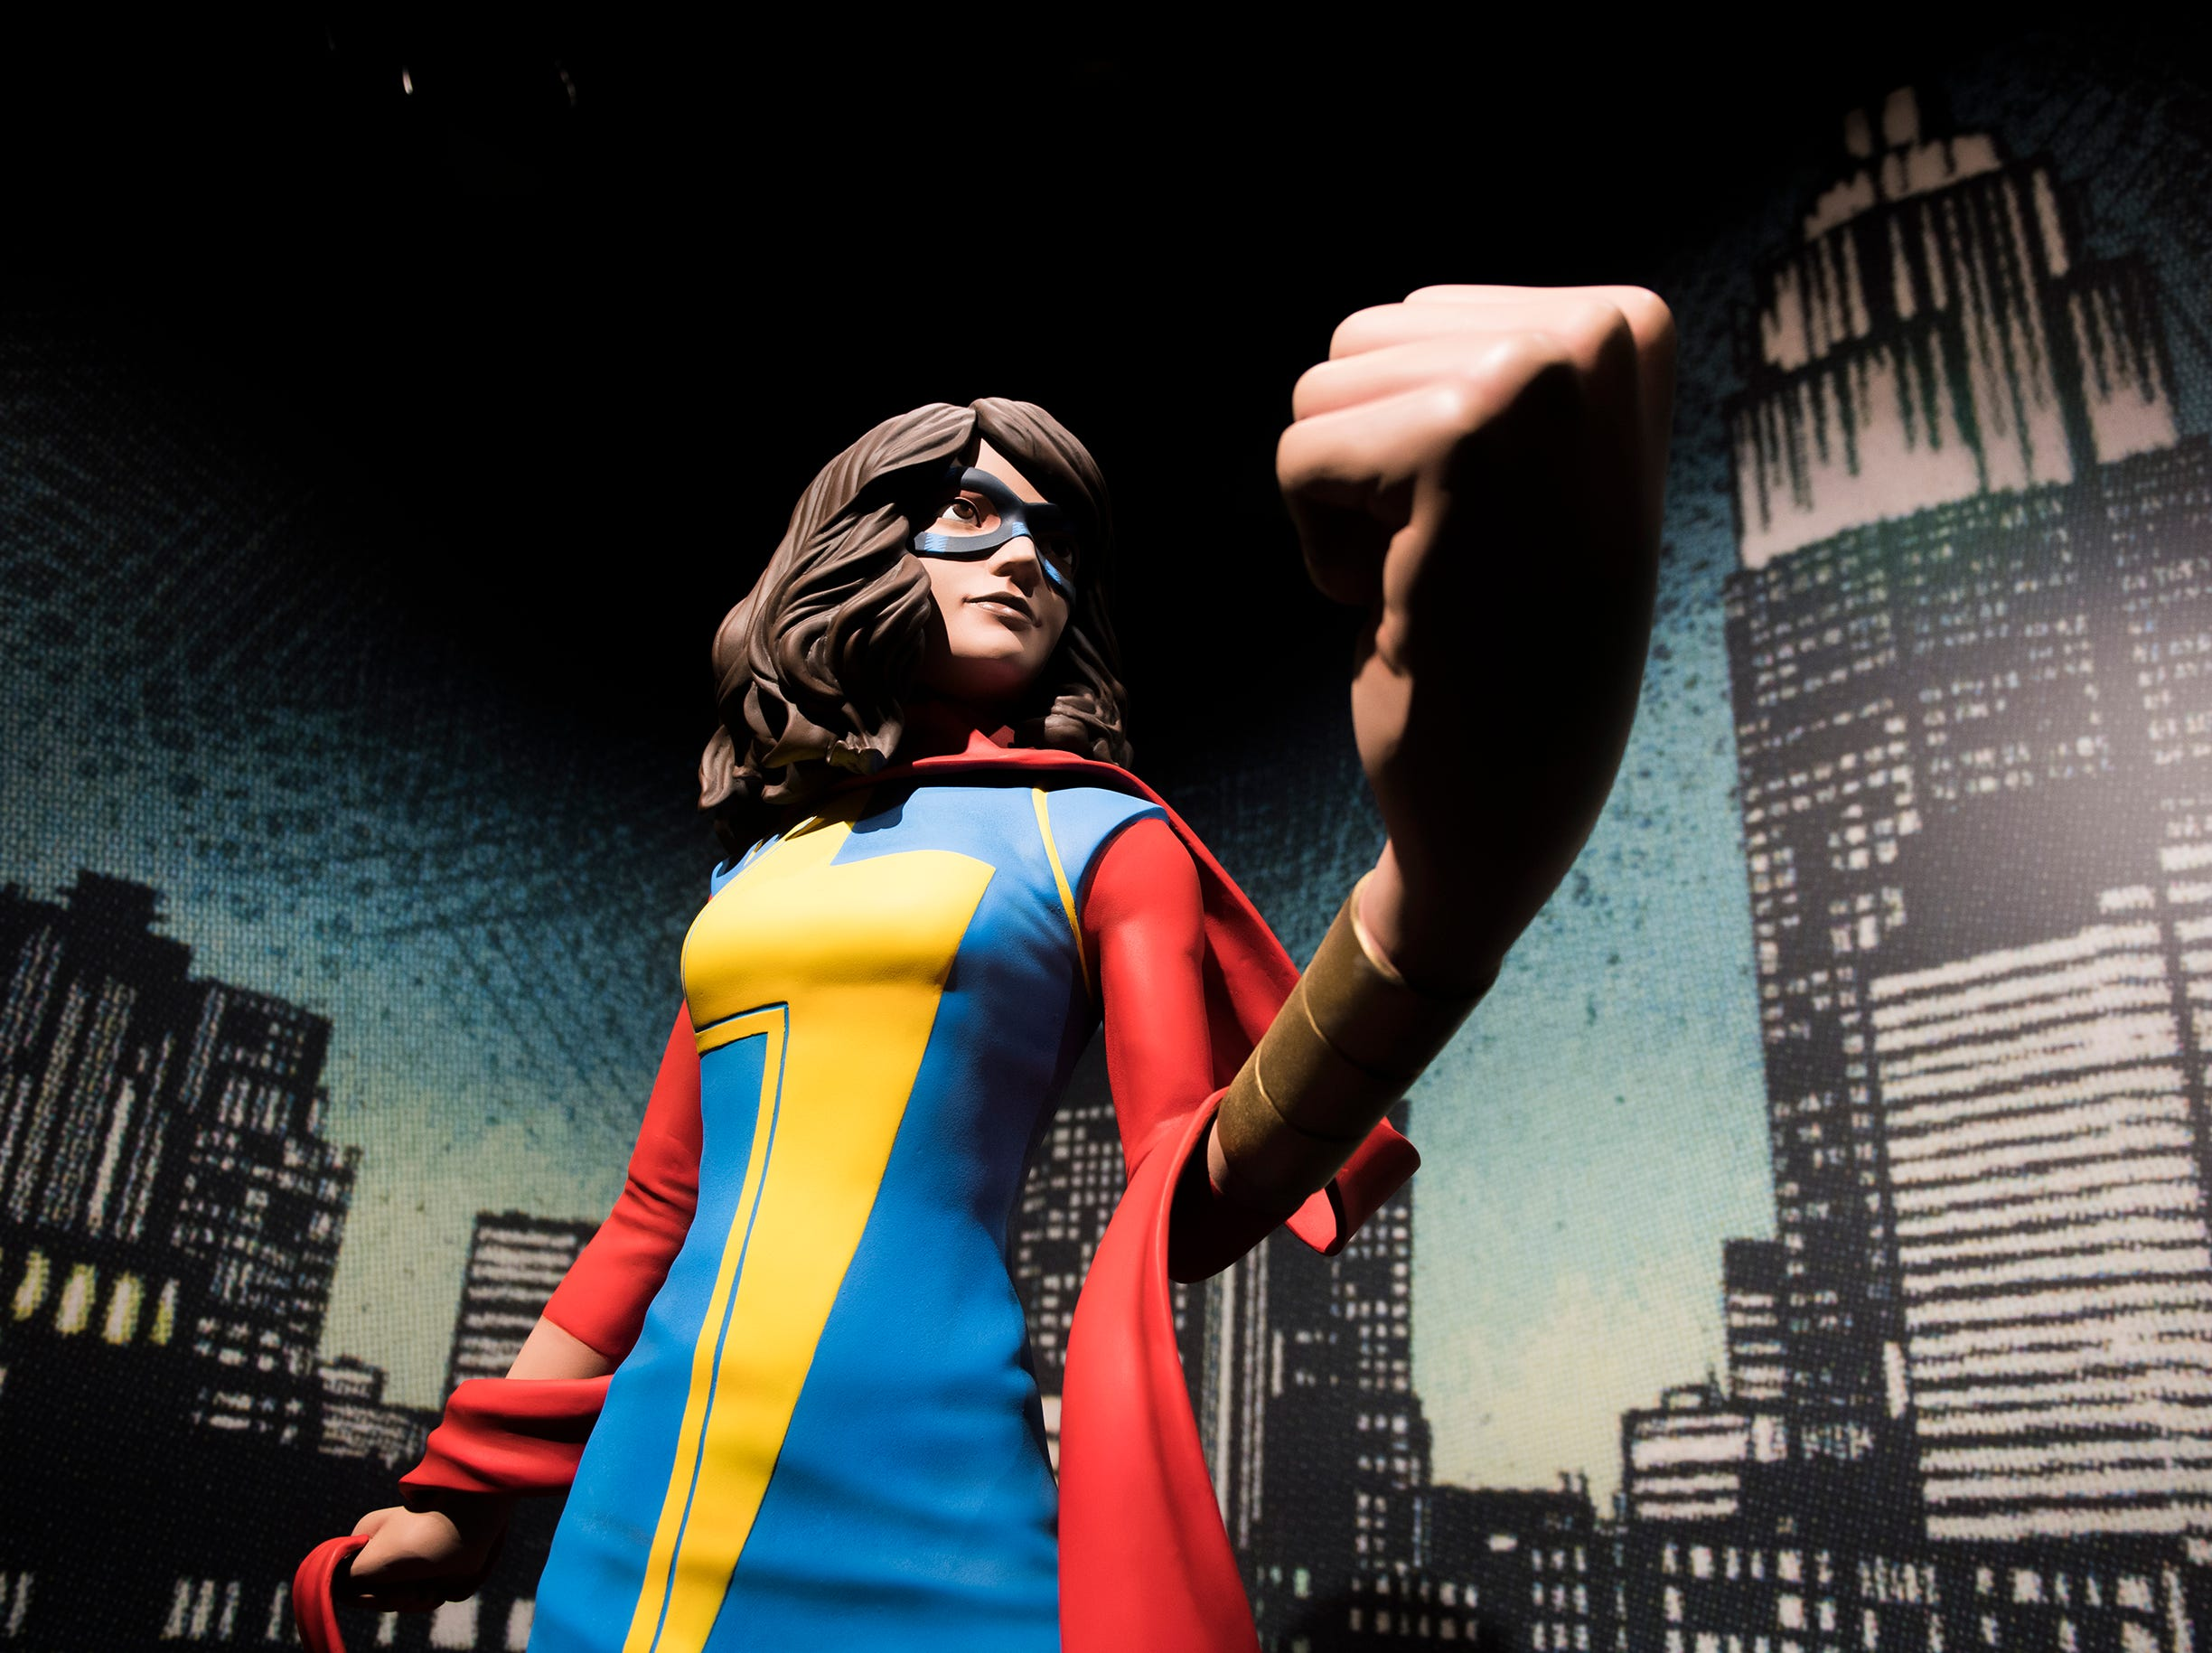 Ms. Marvel inside the new 'Marvel: Universe of Super Heroes' installation at the Franklin Institute Friday, April 12, 2019 in Philadelphia, Pa. The exhibit runs from April 13-September 2.